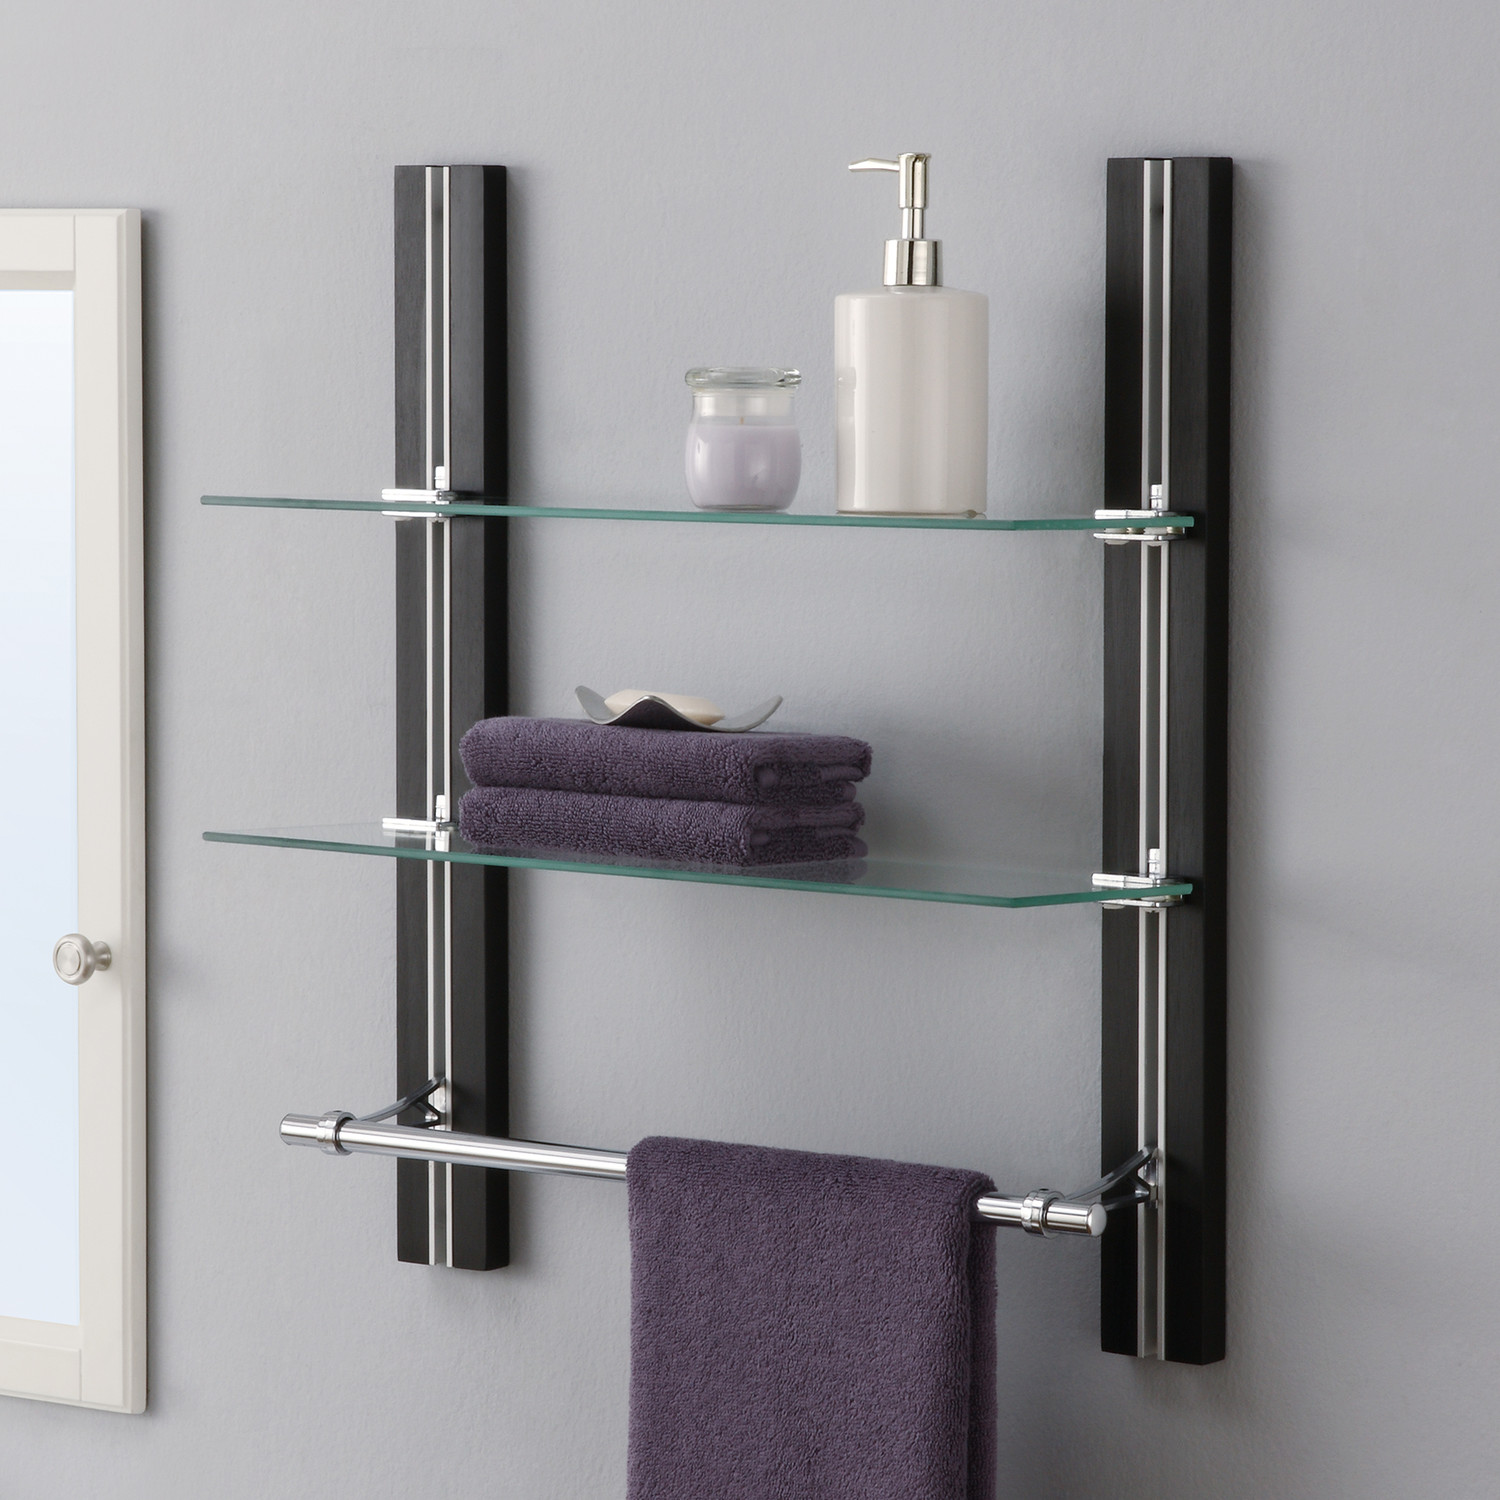 Bathroom Towel Shelf Complete Your Bathroom With Storage For Towel Homesfeed